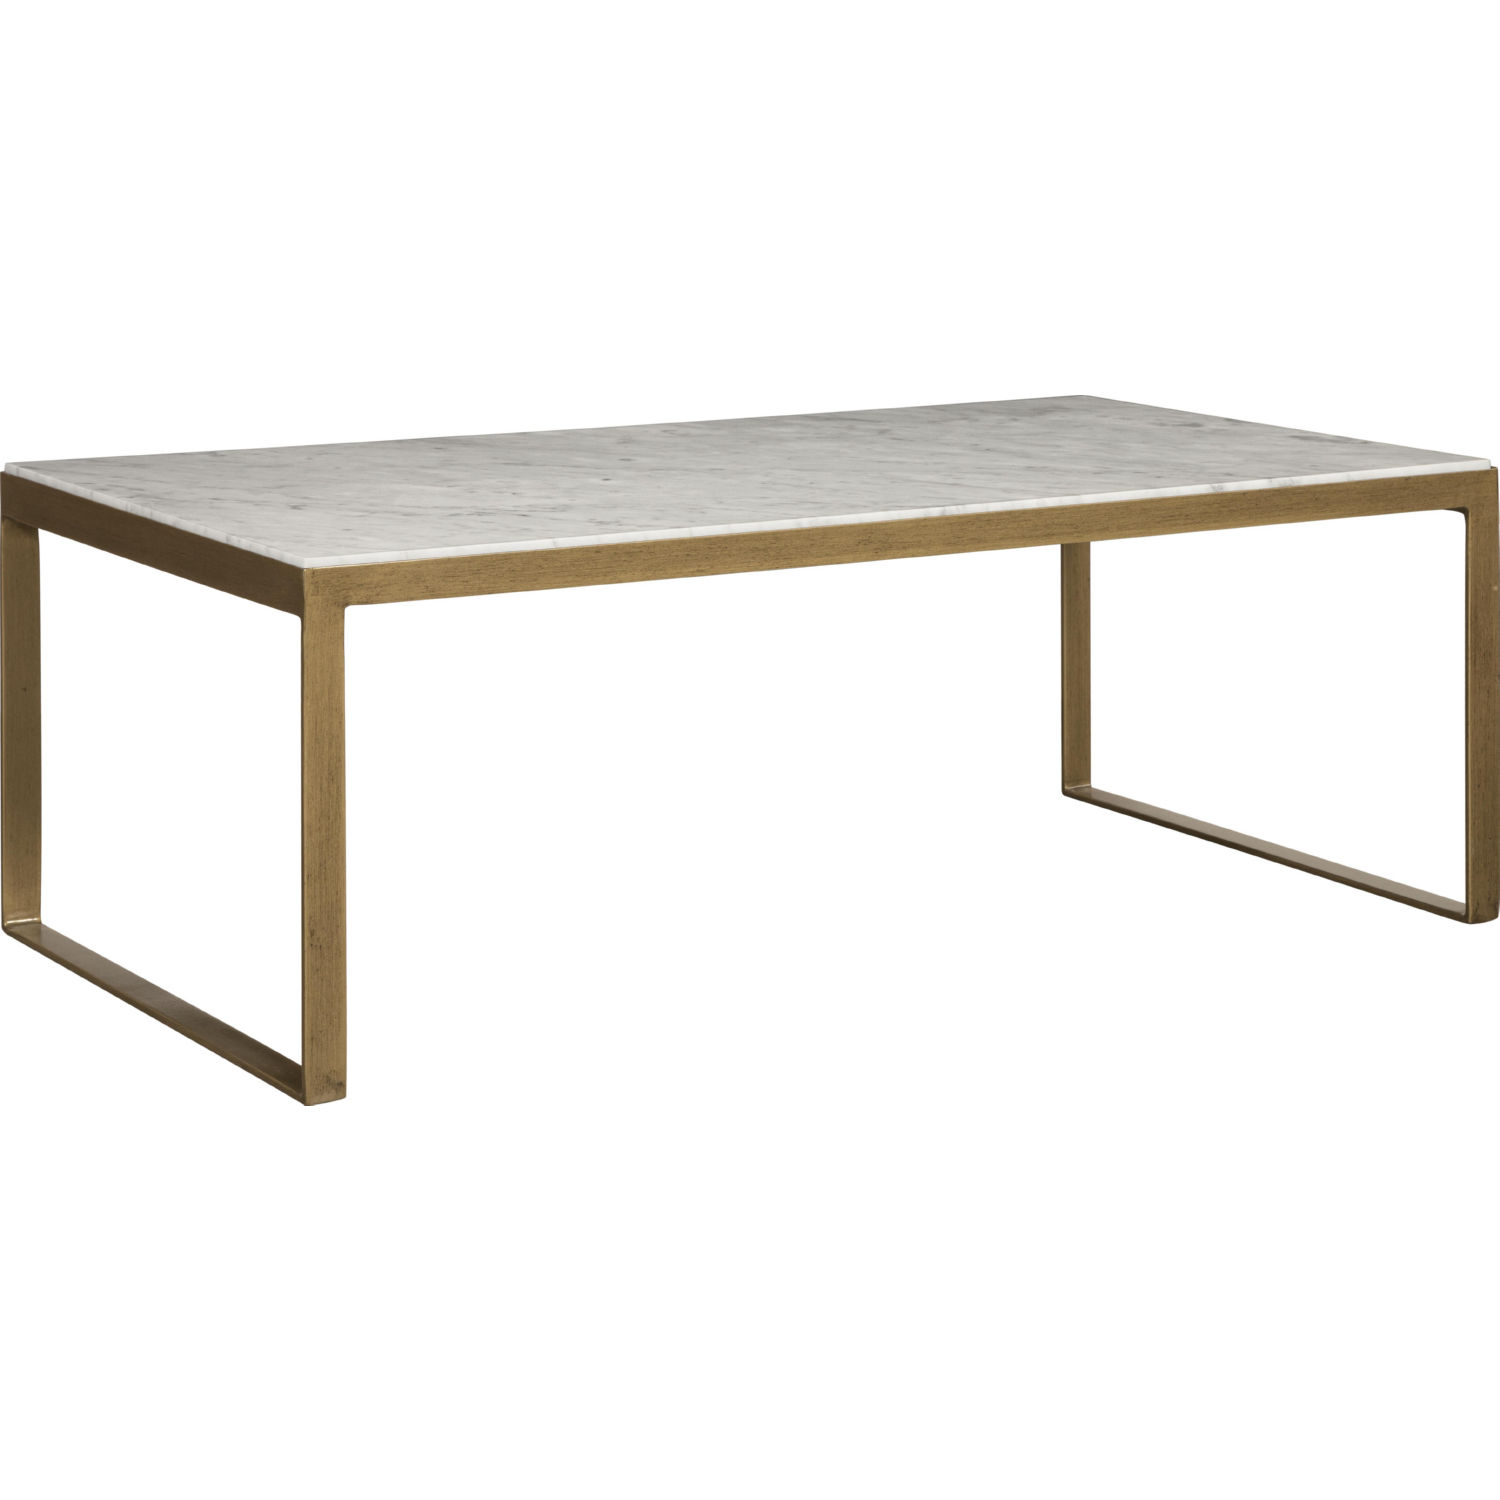 Beautiful Coffee Table Evert Coffee Table In White Italian Marble On Antique Brass Frame By Sunpan